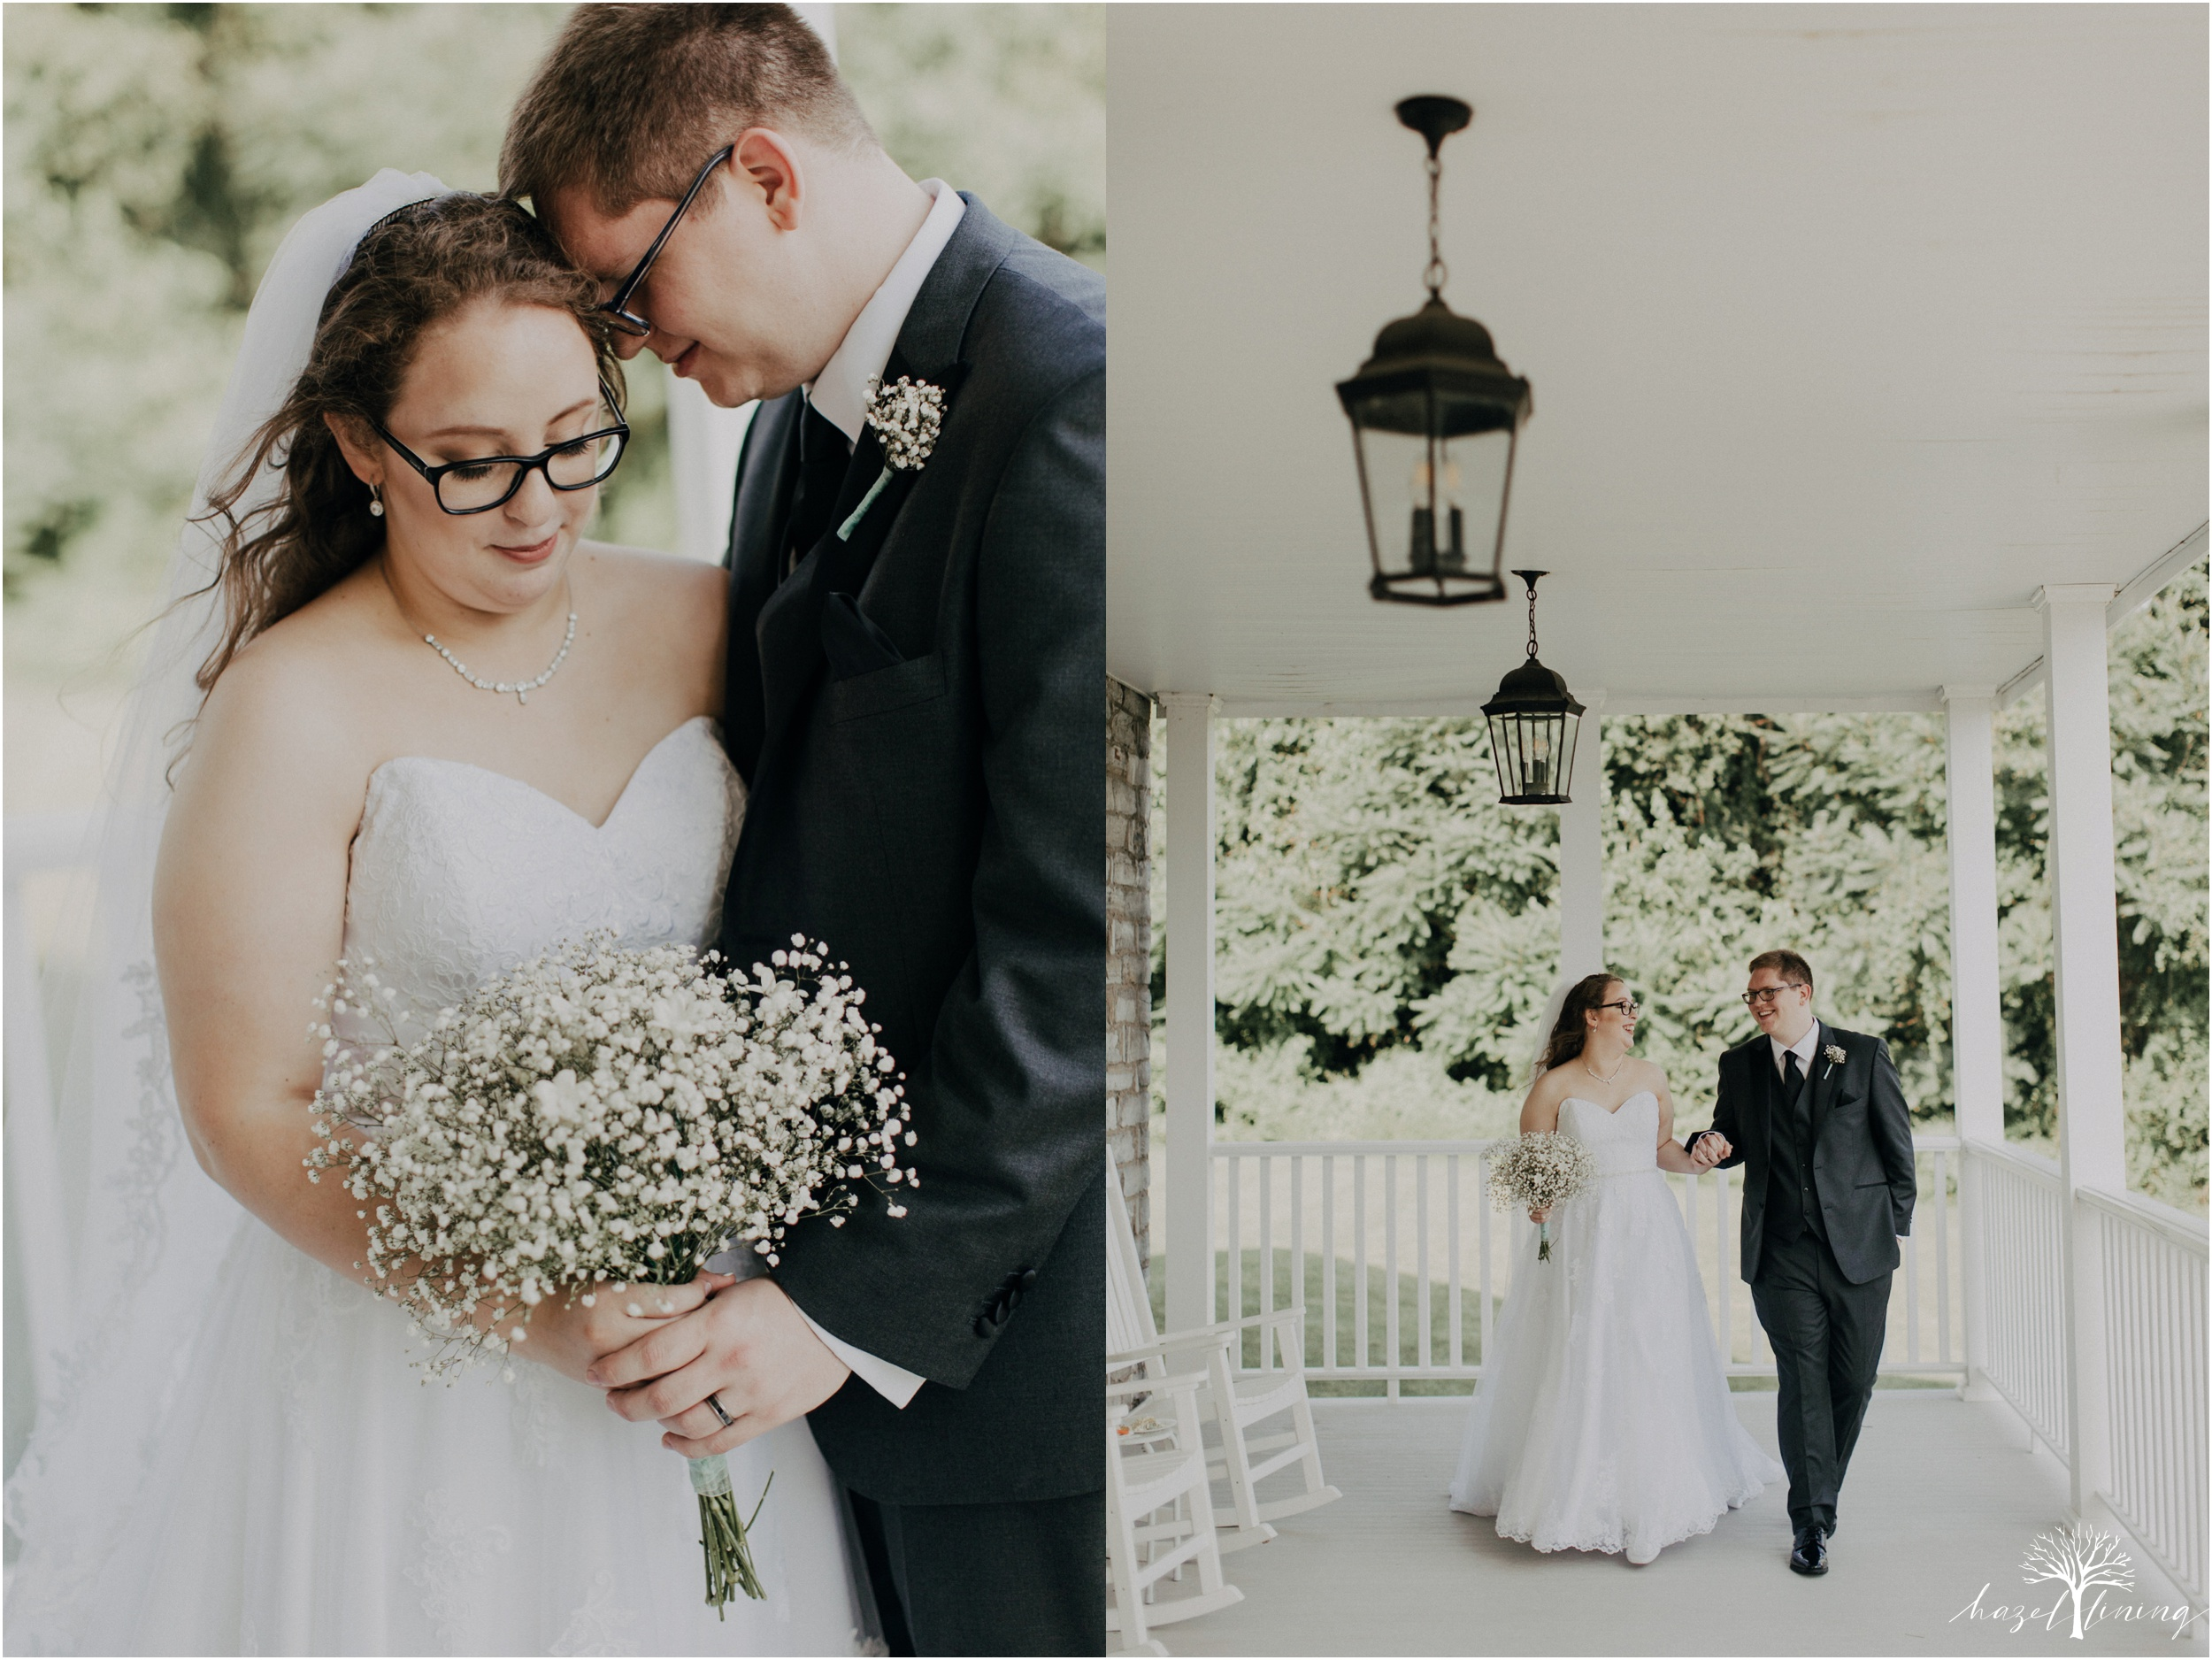 laura-zach-mccaskill-harmony-hall-lebanon-valley-college-summer-wedding-hazel-lining-photography-destination-elopement-wedding-engagement-photography_0101.jpg